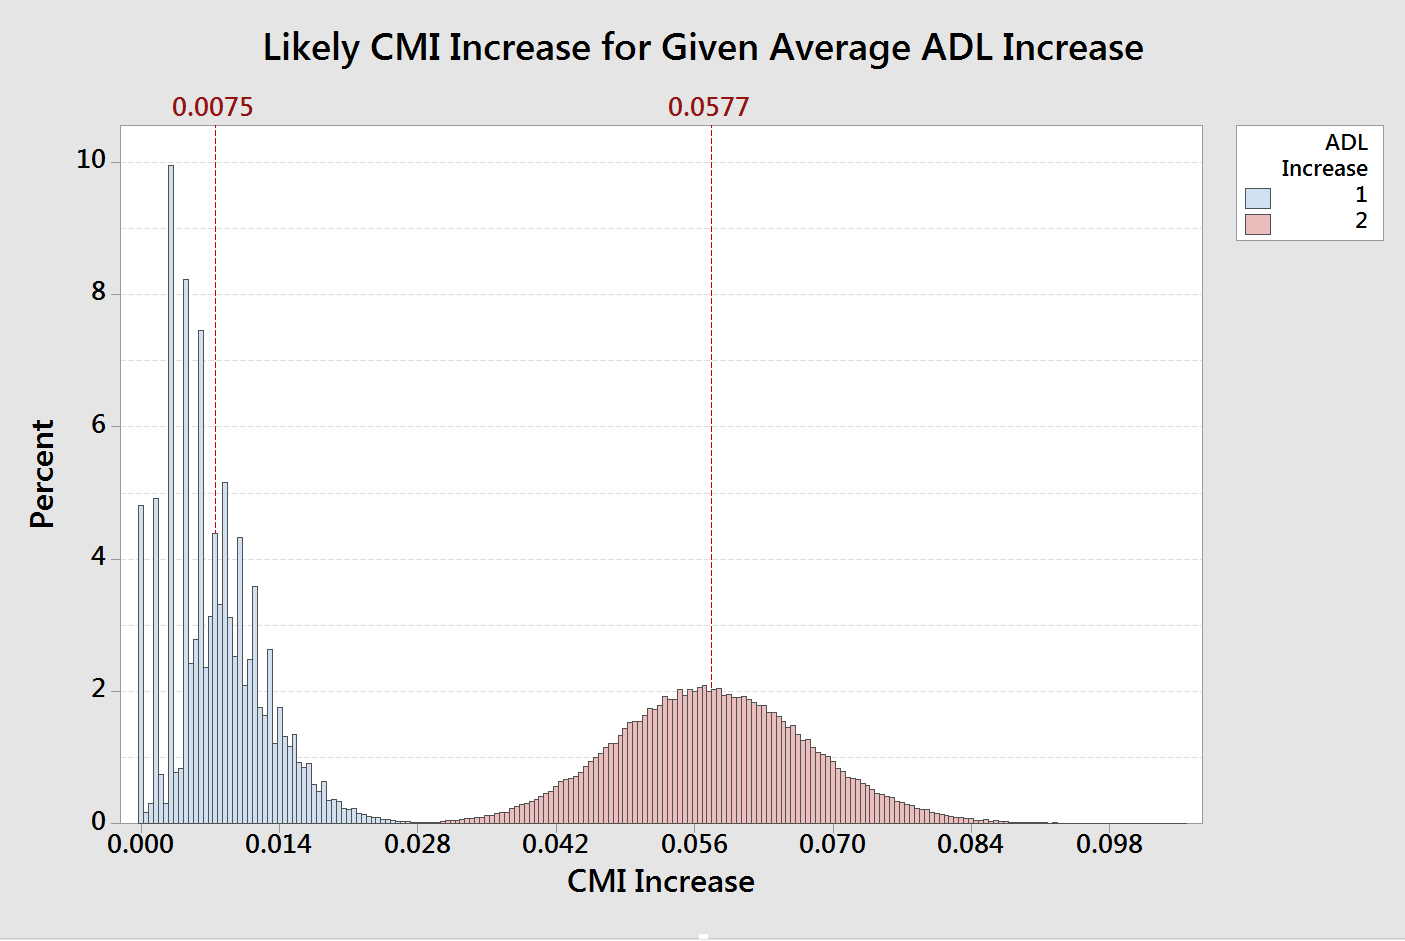 LIkely CMI Increase for 1 or 2 ADL points